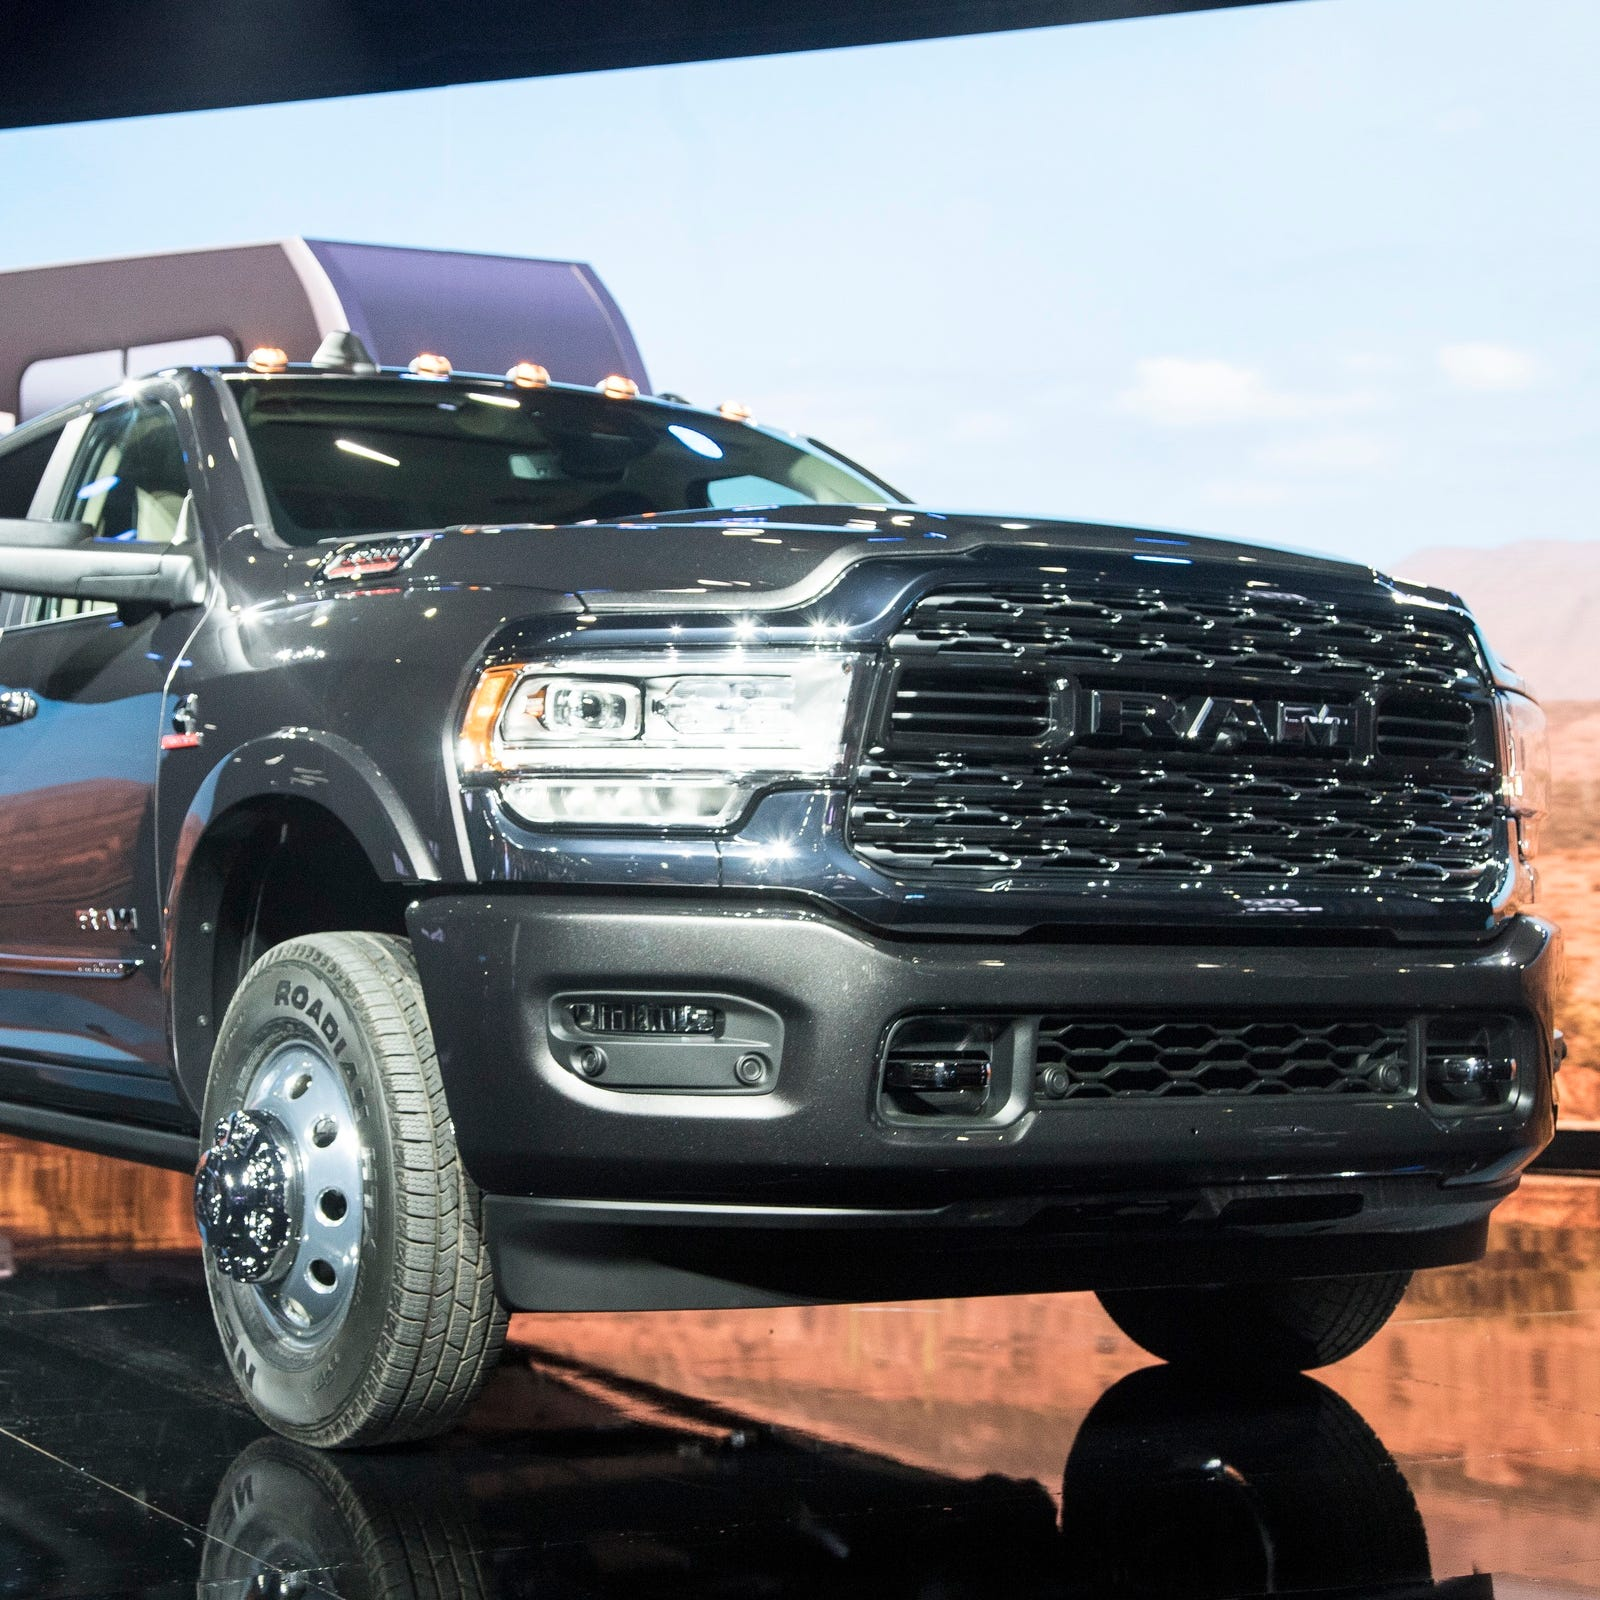 2019 Ram Heavy Duty pickups priced from $33,395 -- up to more than $67,000